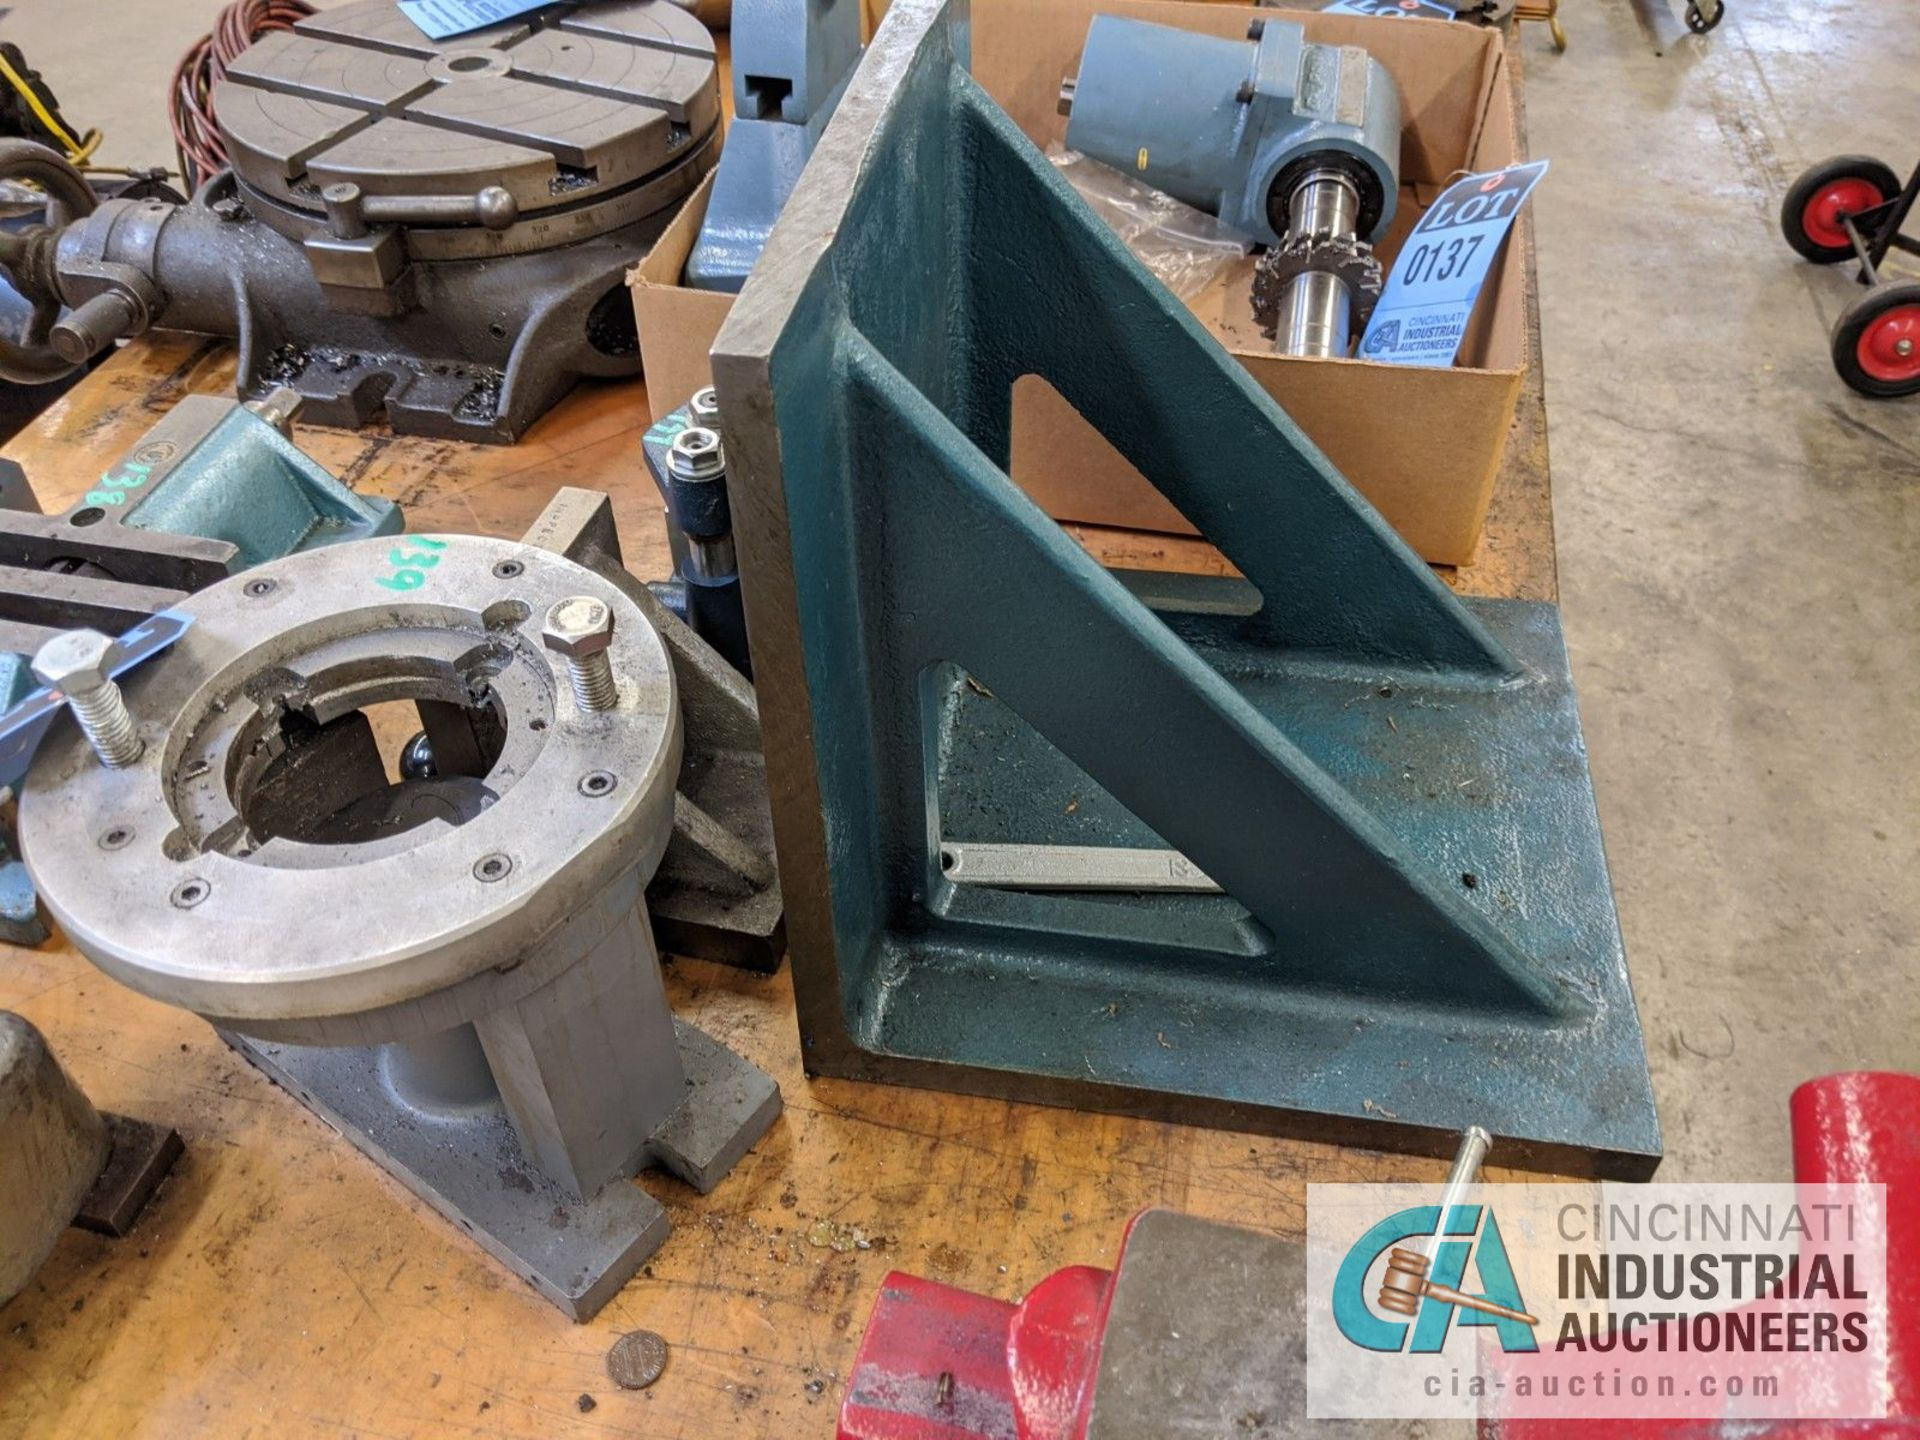 (LOT) ANGLE PLATES, PRESSING FIXTURE, ROTARY FIXTURE - Image 2 of 2